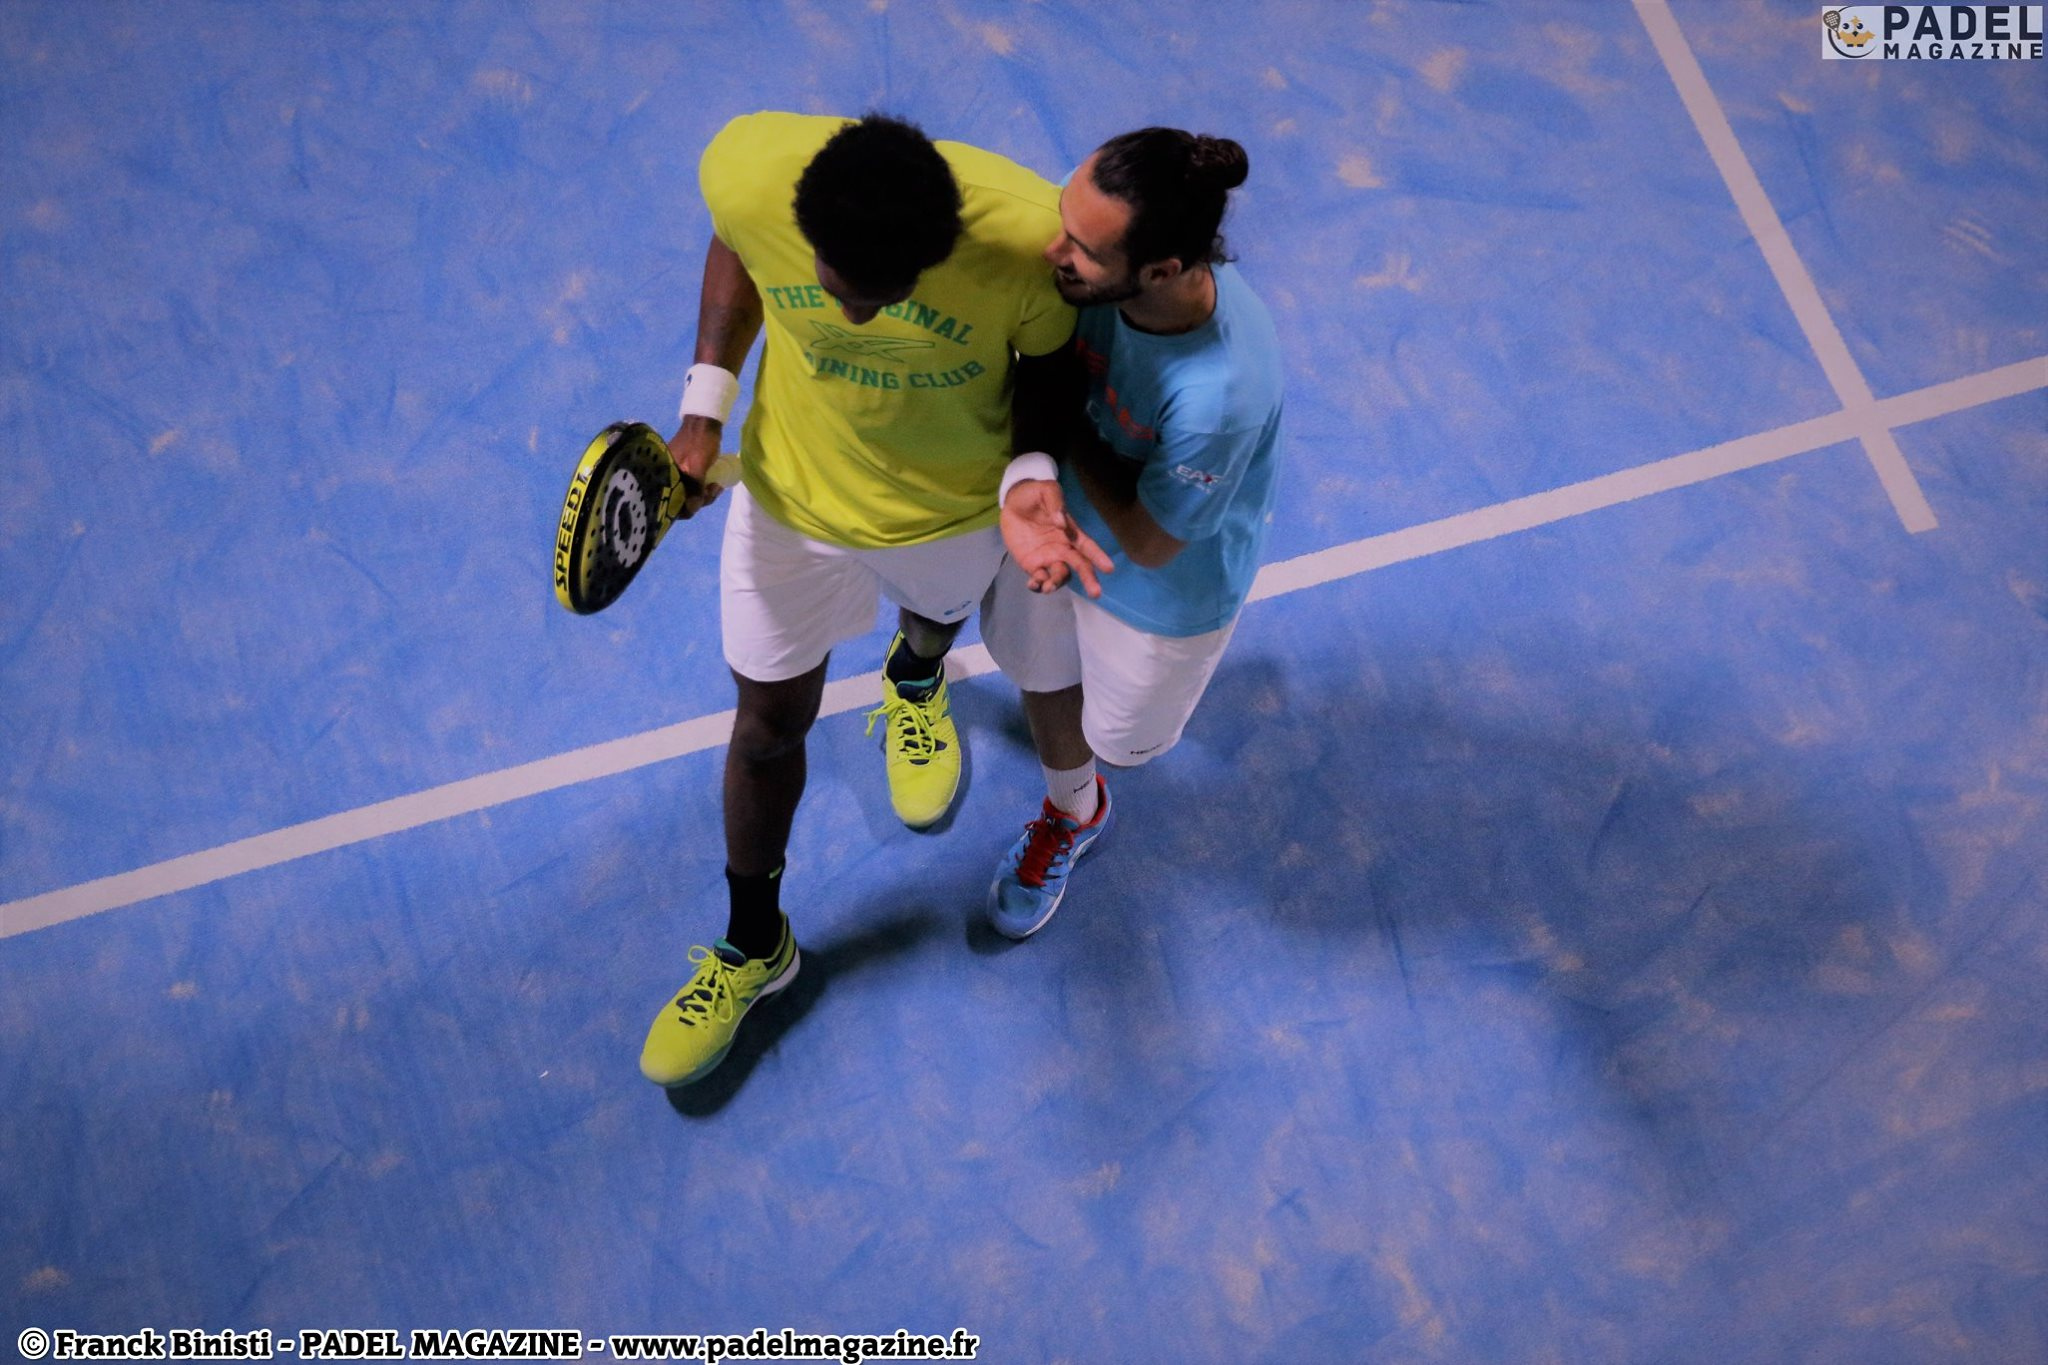 Gael Monfils championships of France padel or not?